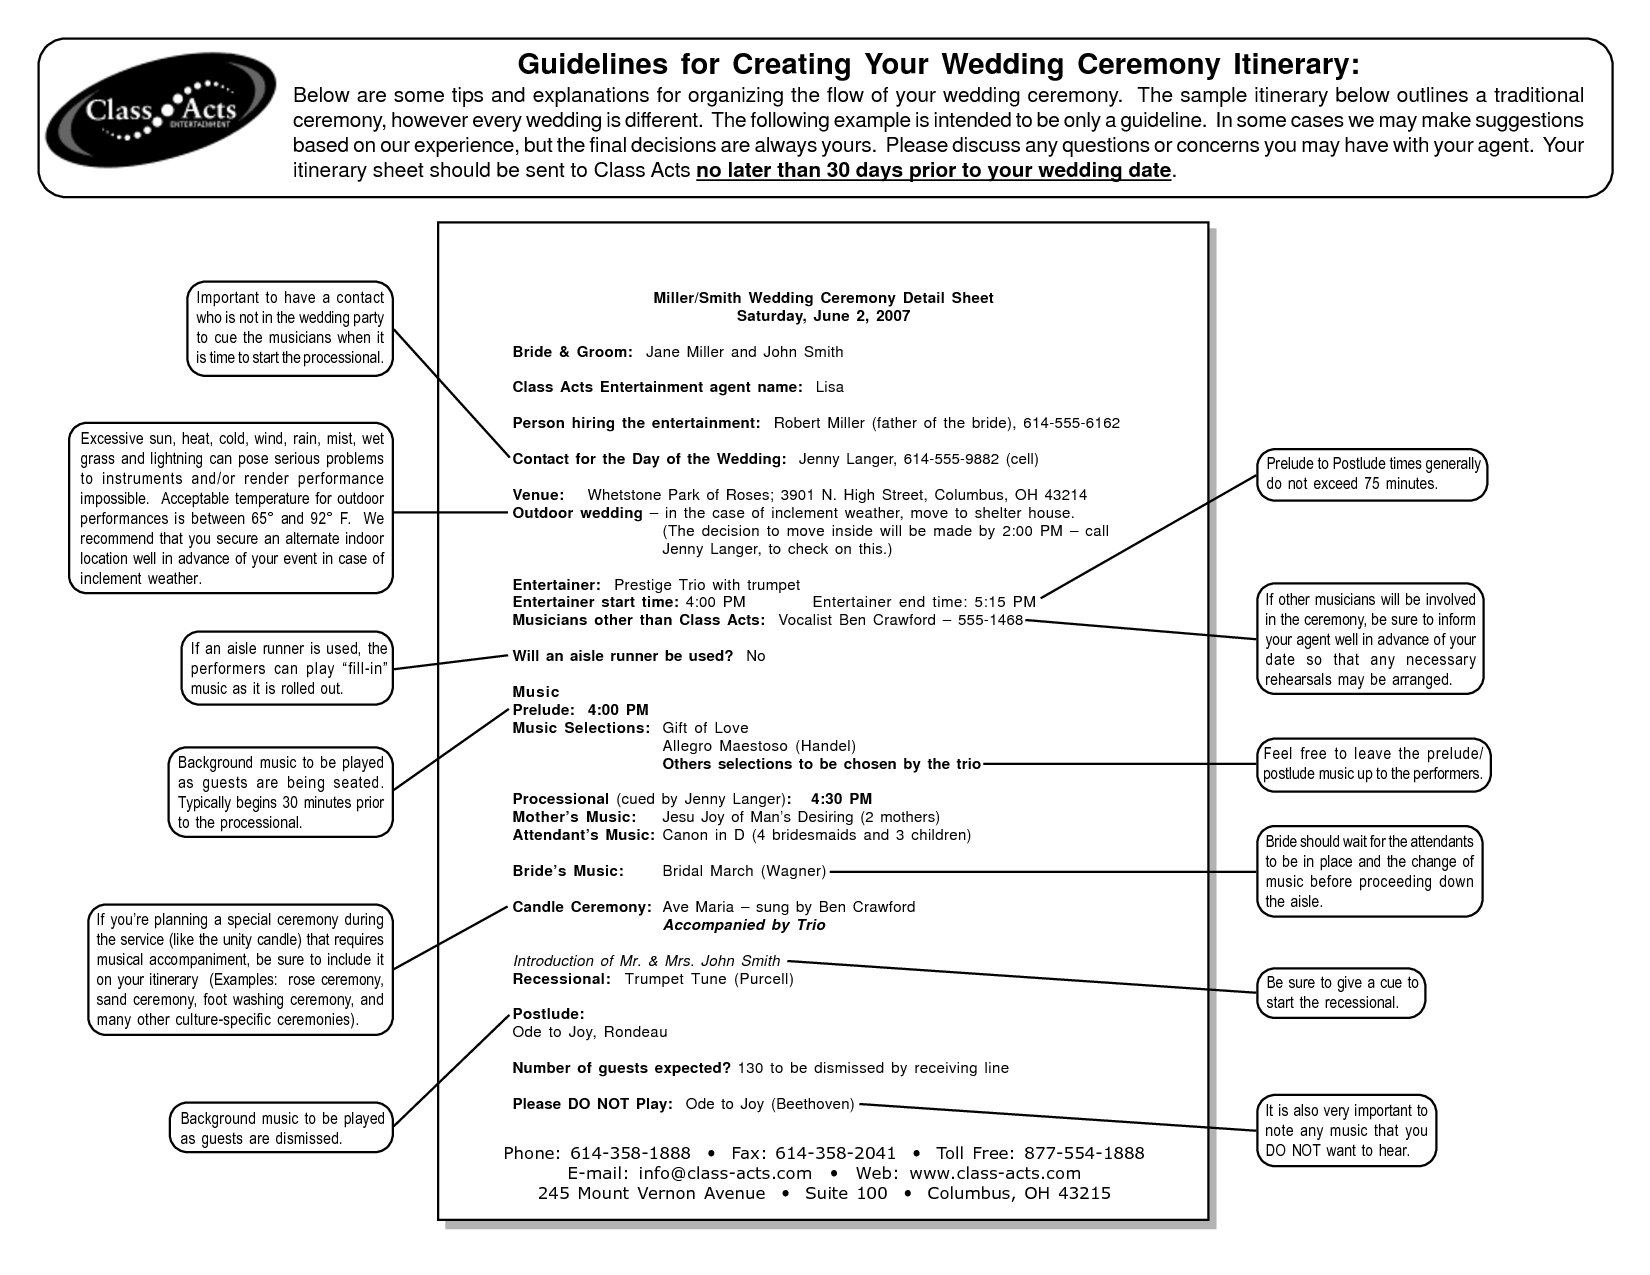 Outline For Formal Wedding Itinerary Guidelines Creating Your Ceremony